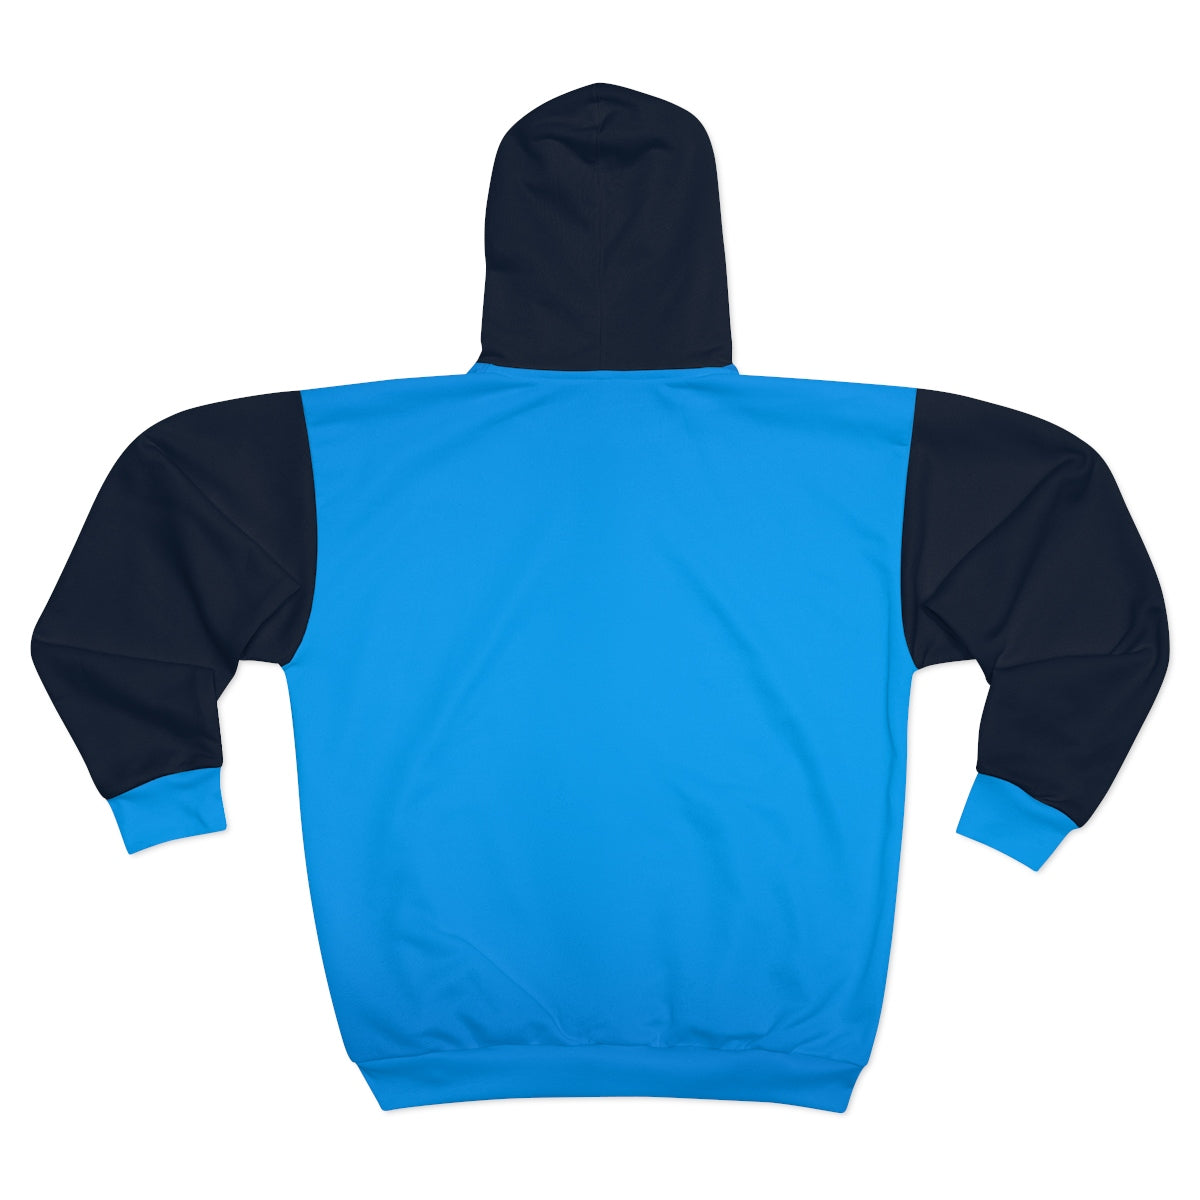 The Bar Experts Dual Blue Hoodie